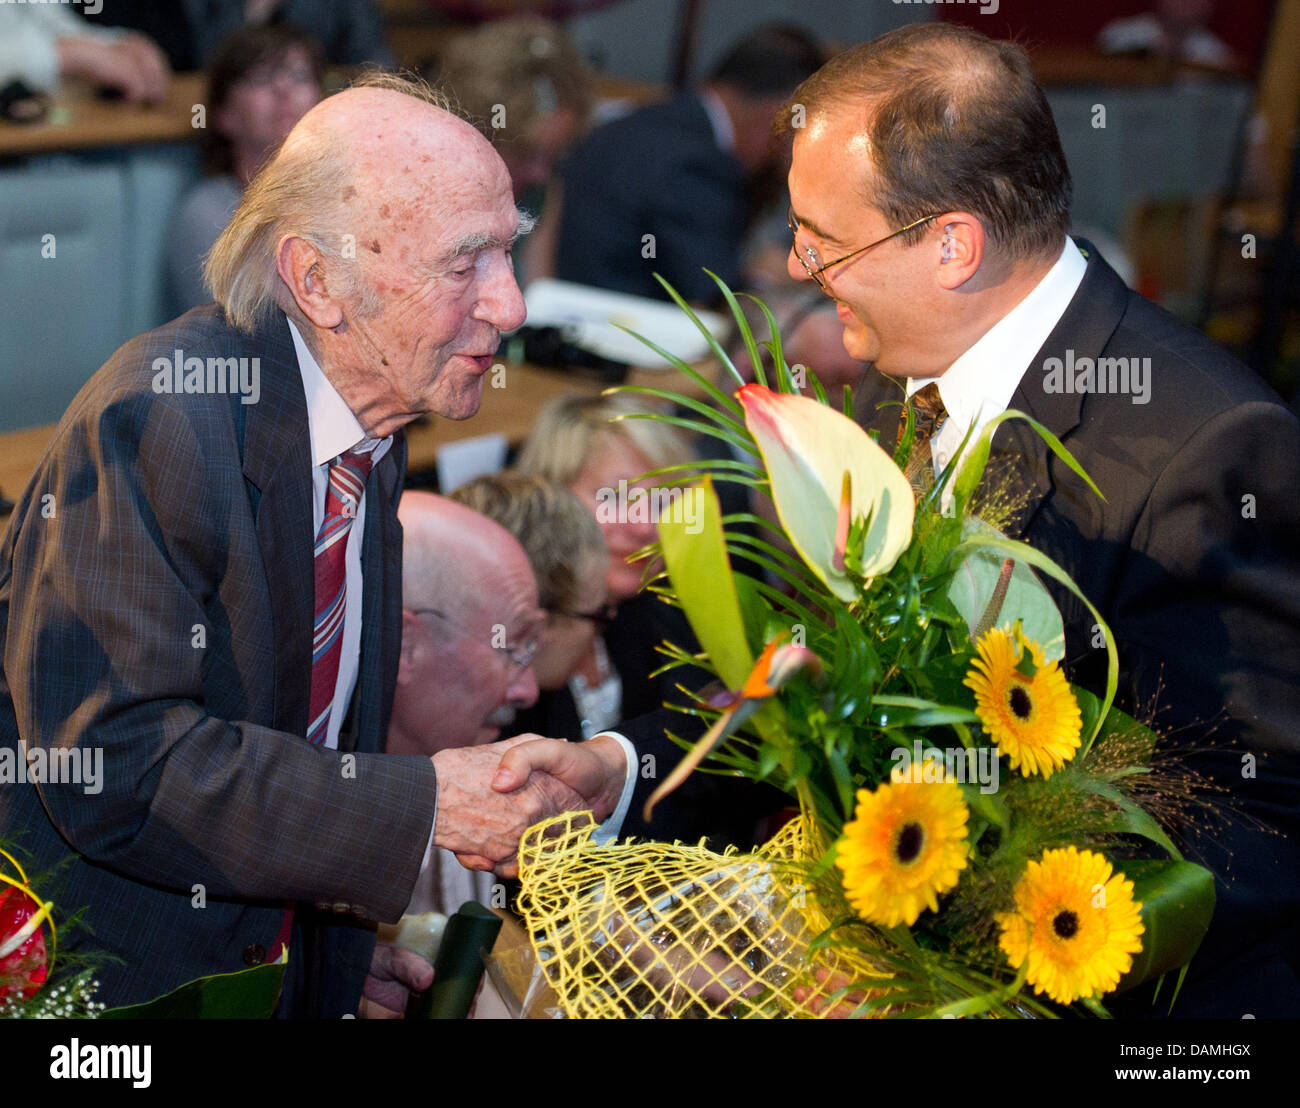 The Translator Karl Dedecius L Receives Flowers For His 90th Stock